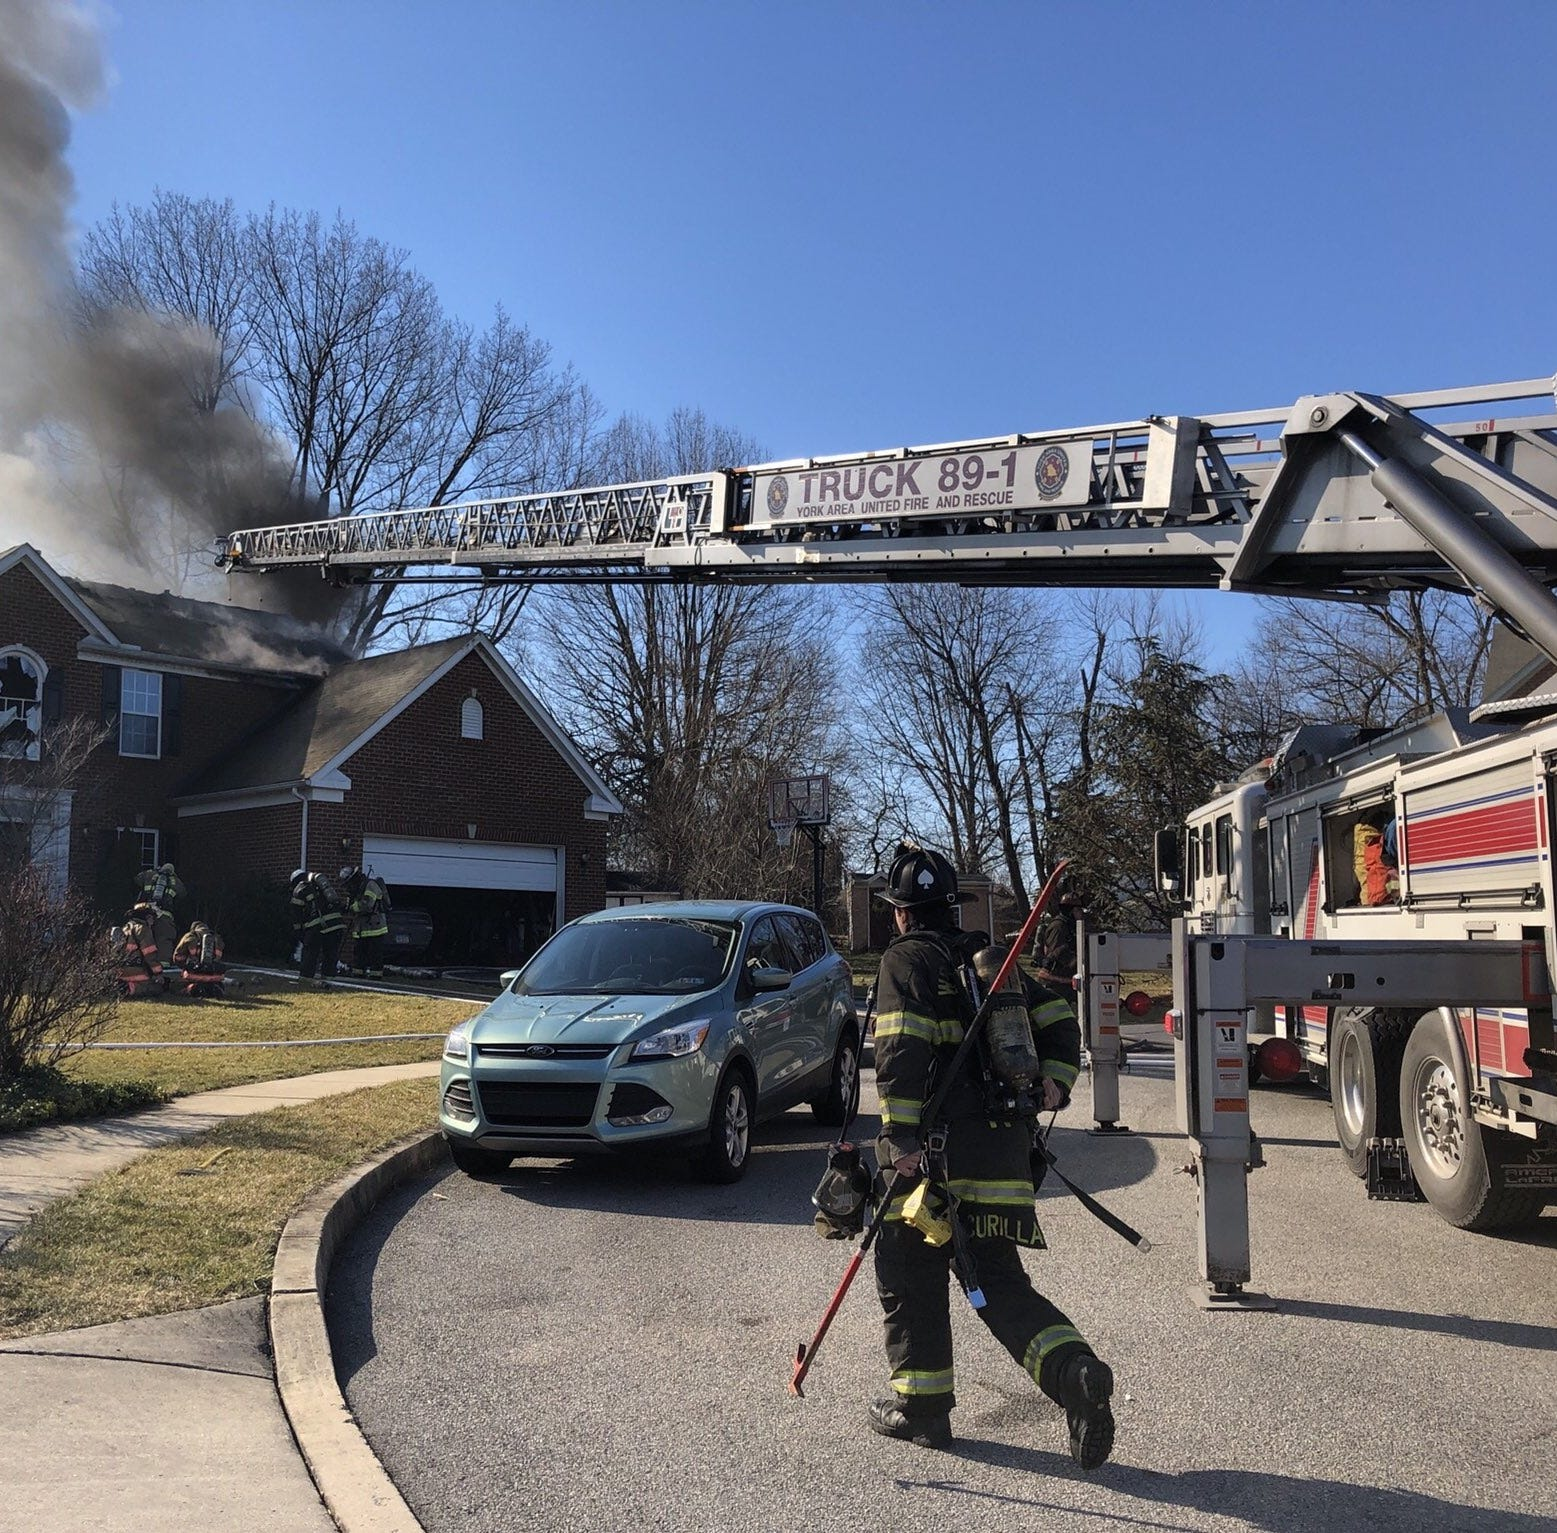 None injured in Springettsbury Township house fire